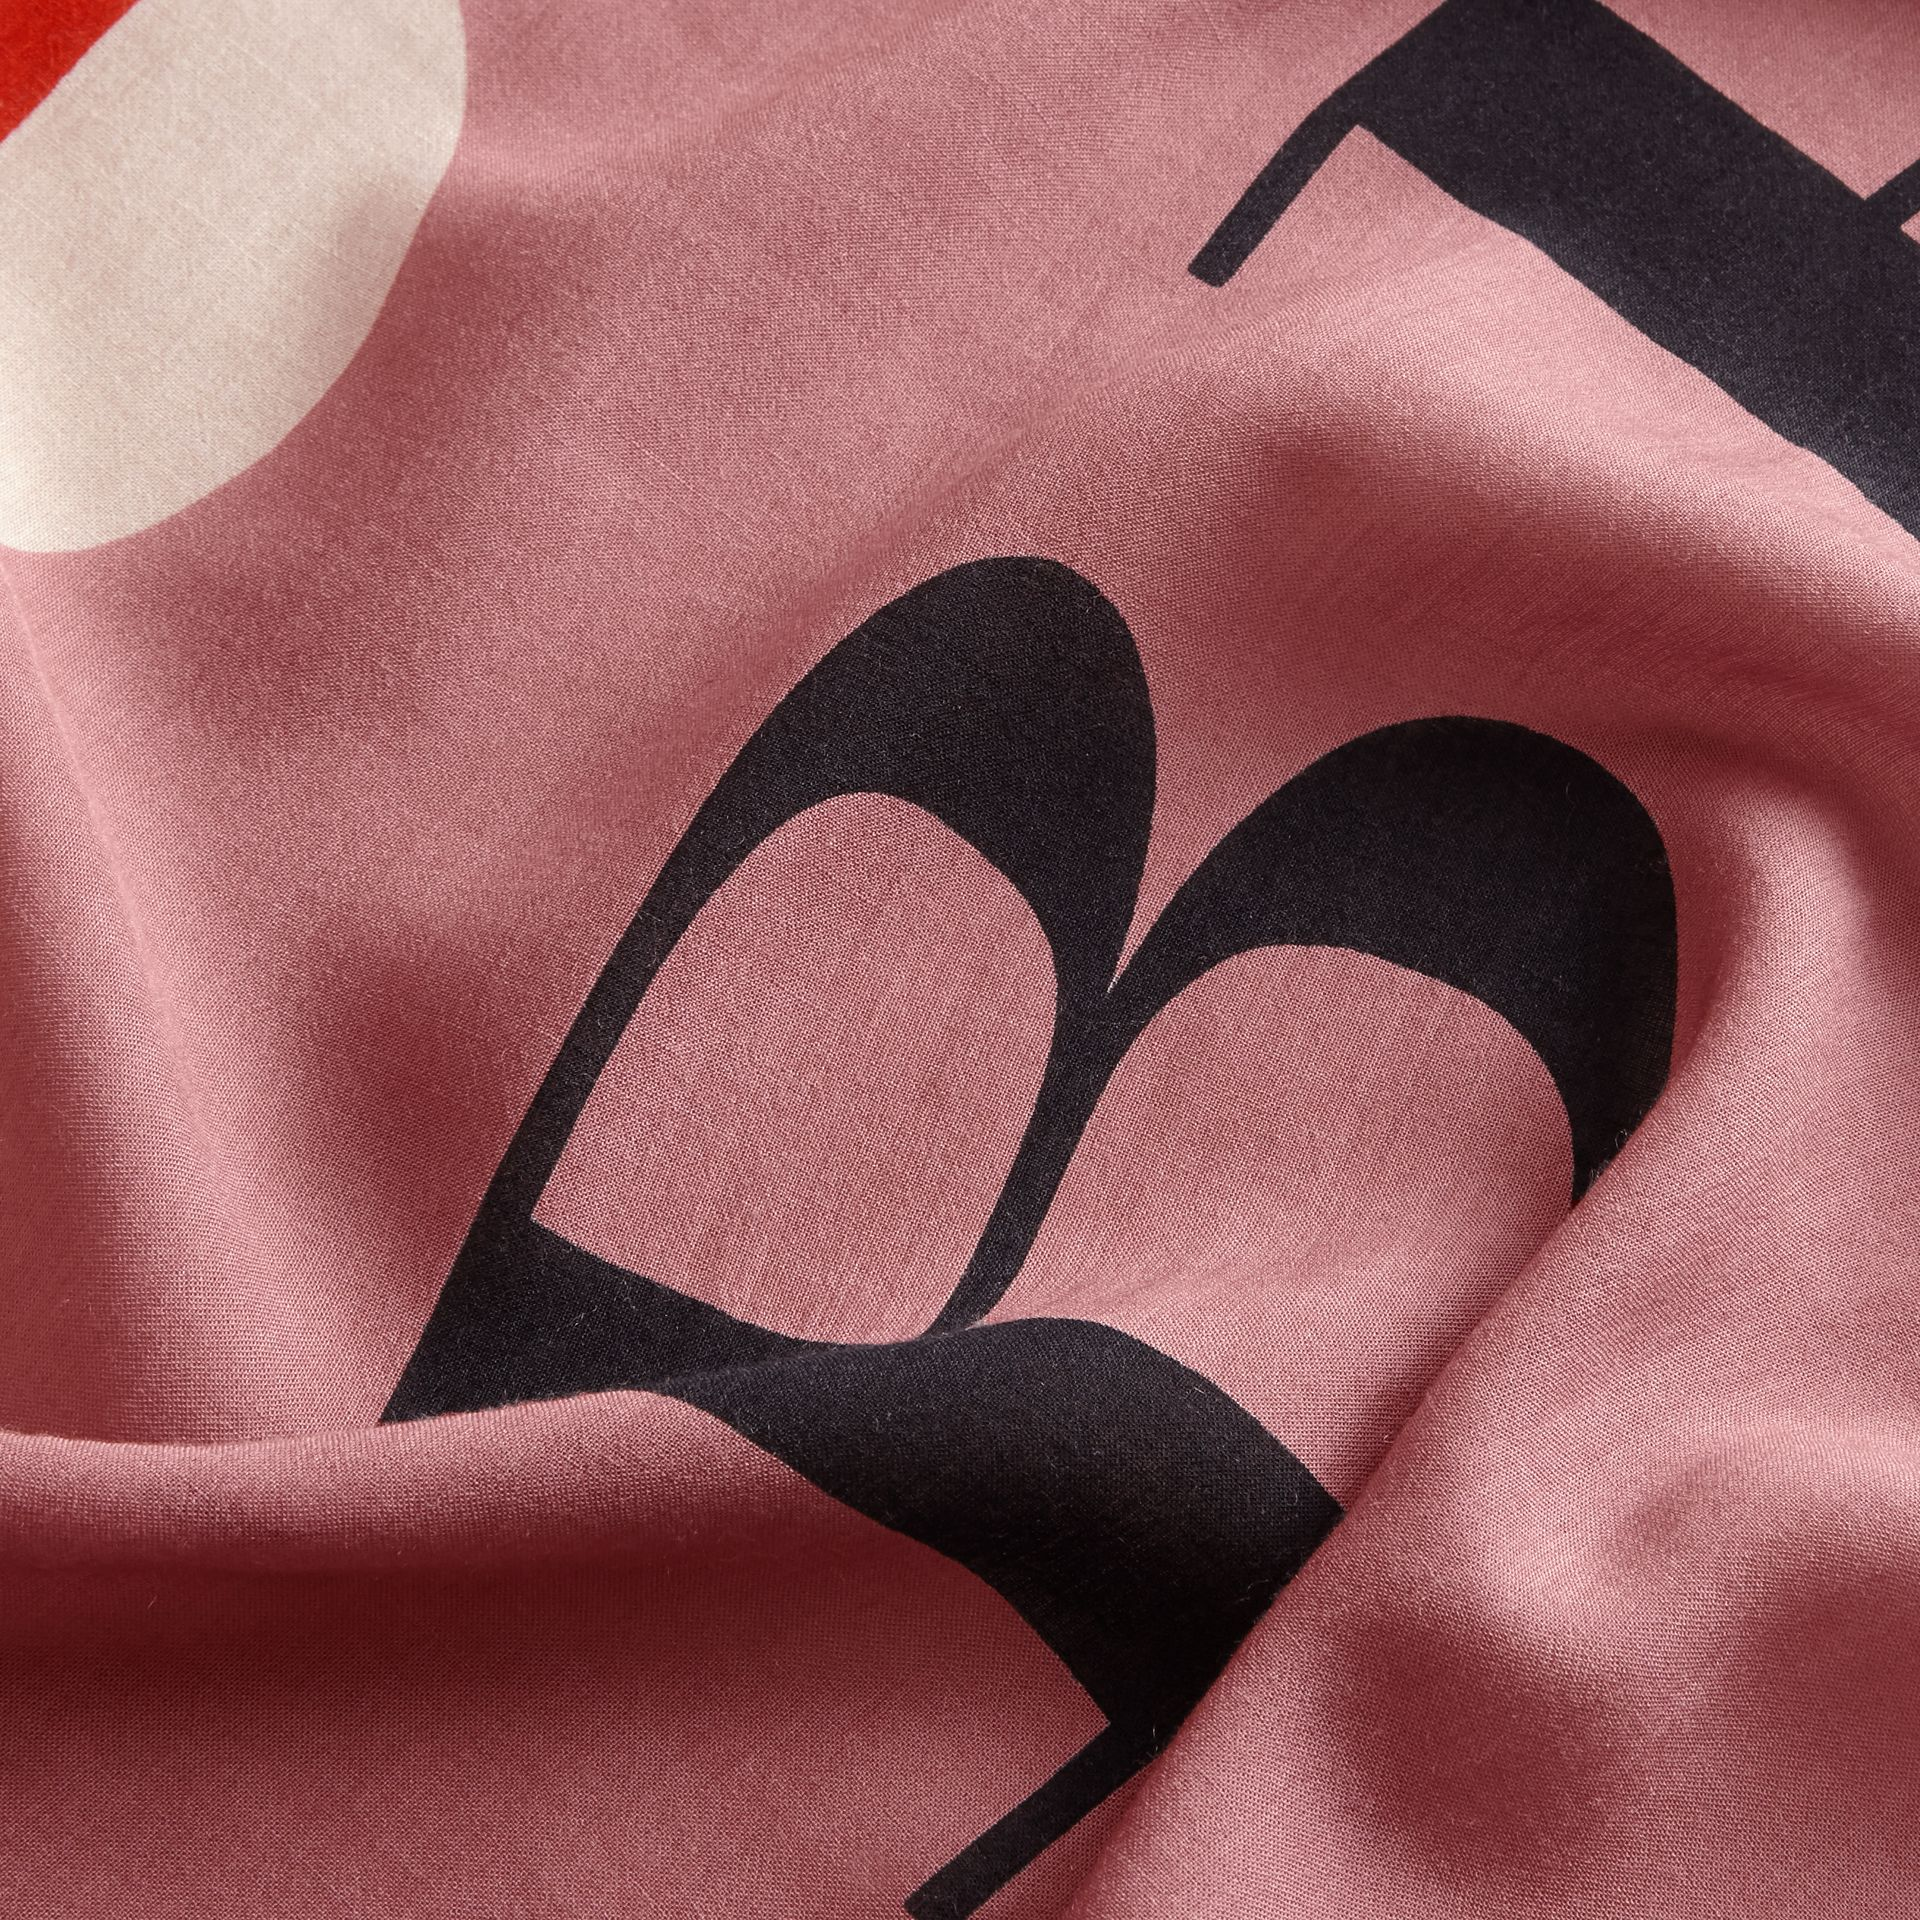 Scallop and Stripe Print Modal Wool Scarf in Dusty Pink - Women | Burberry - gallery image 2